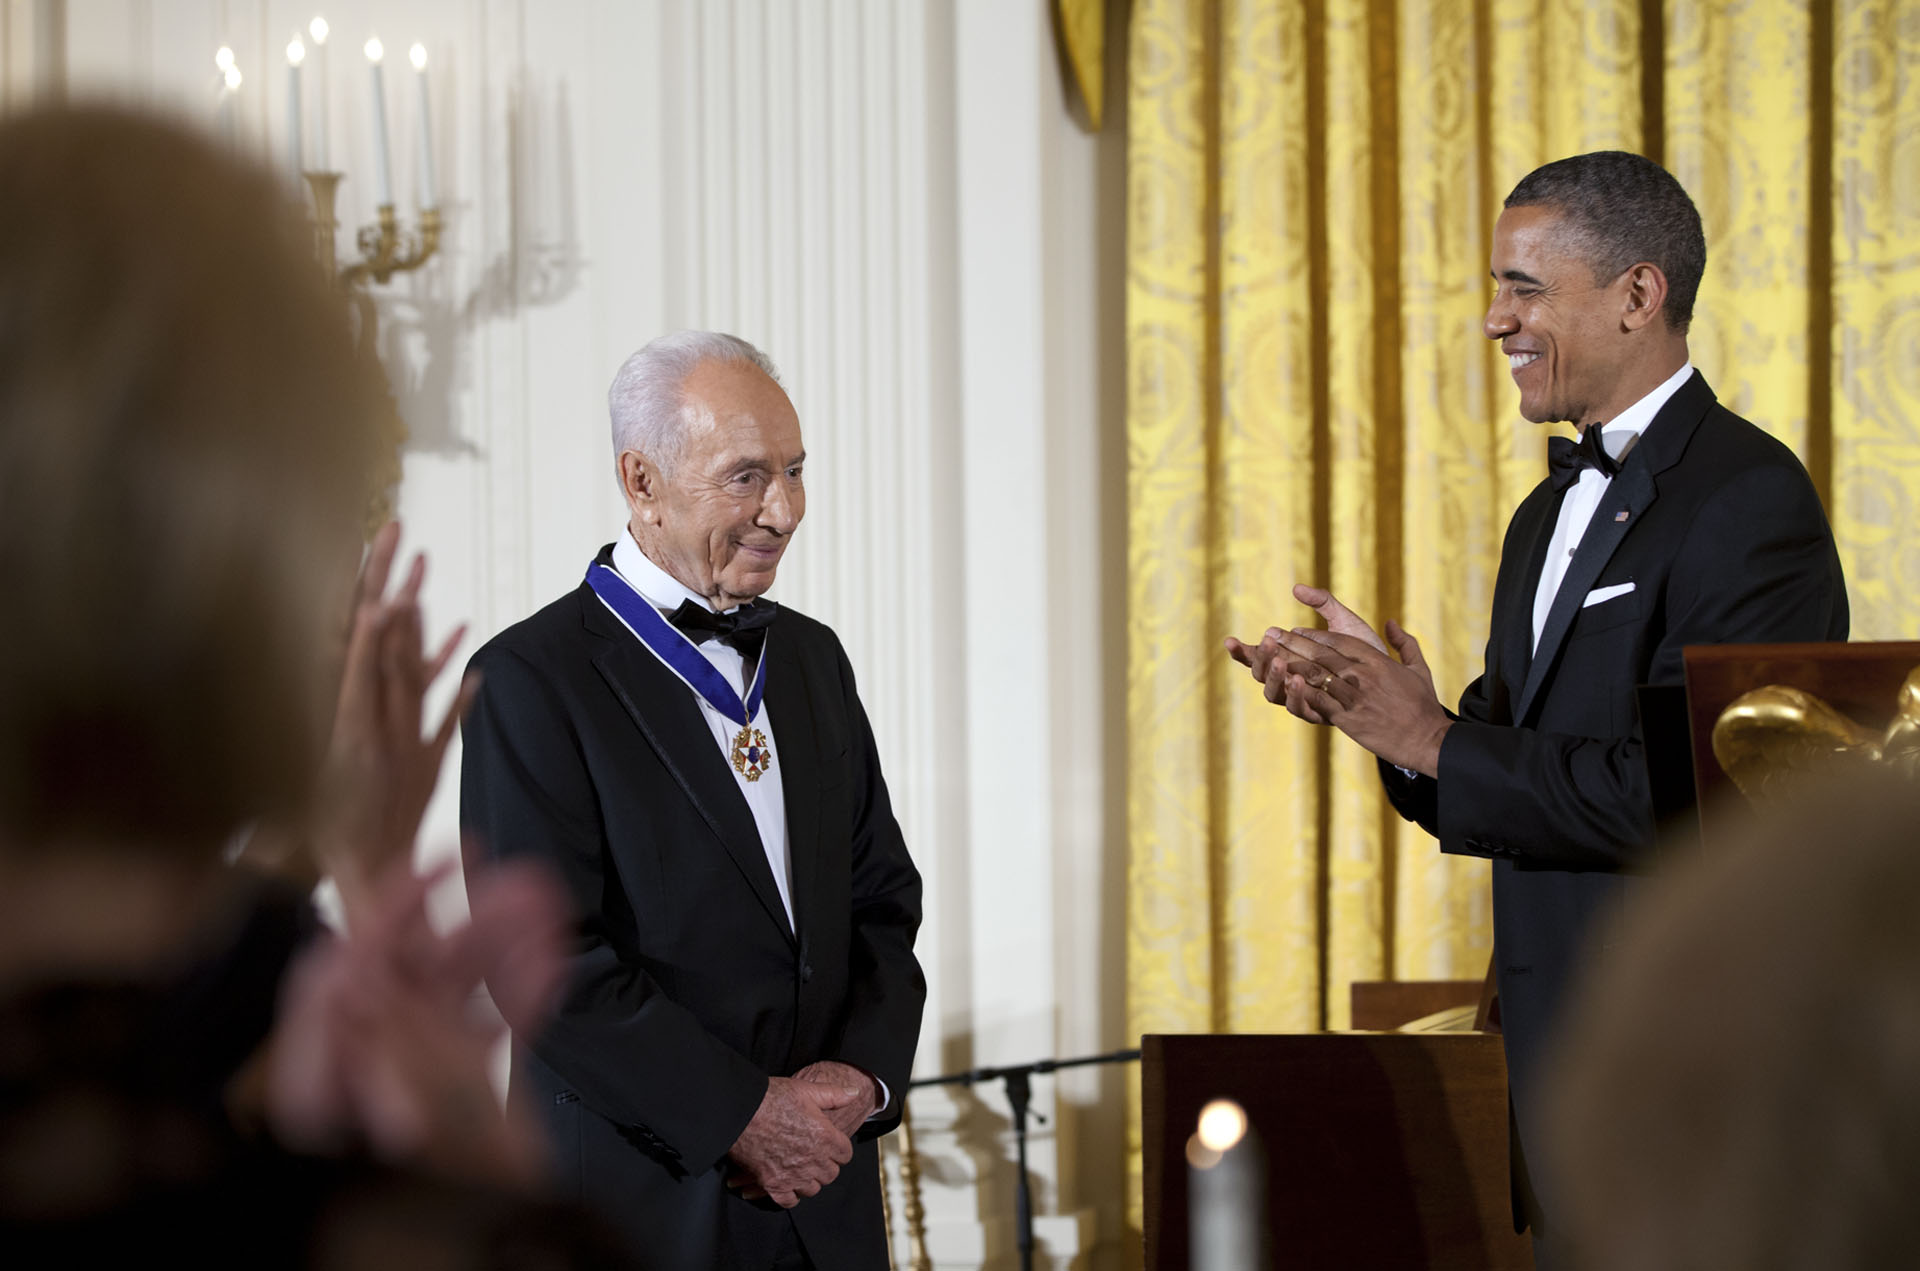 President Obama presents the Medal of Freedom to President Shimon Peres of Israel (June 13, 2012)